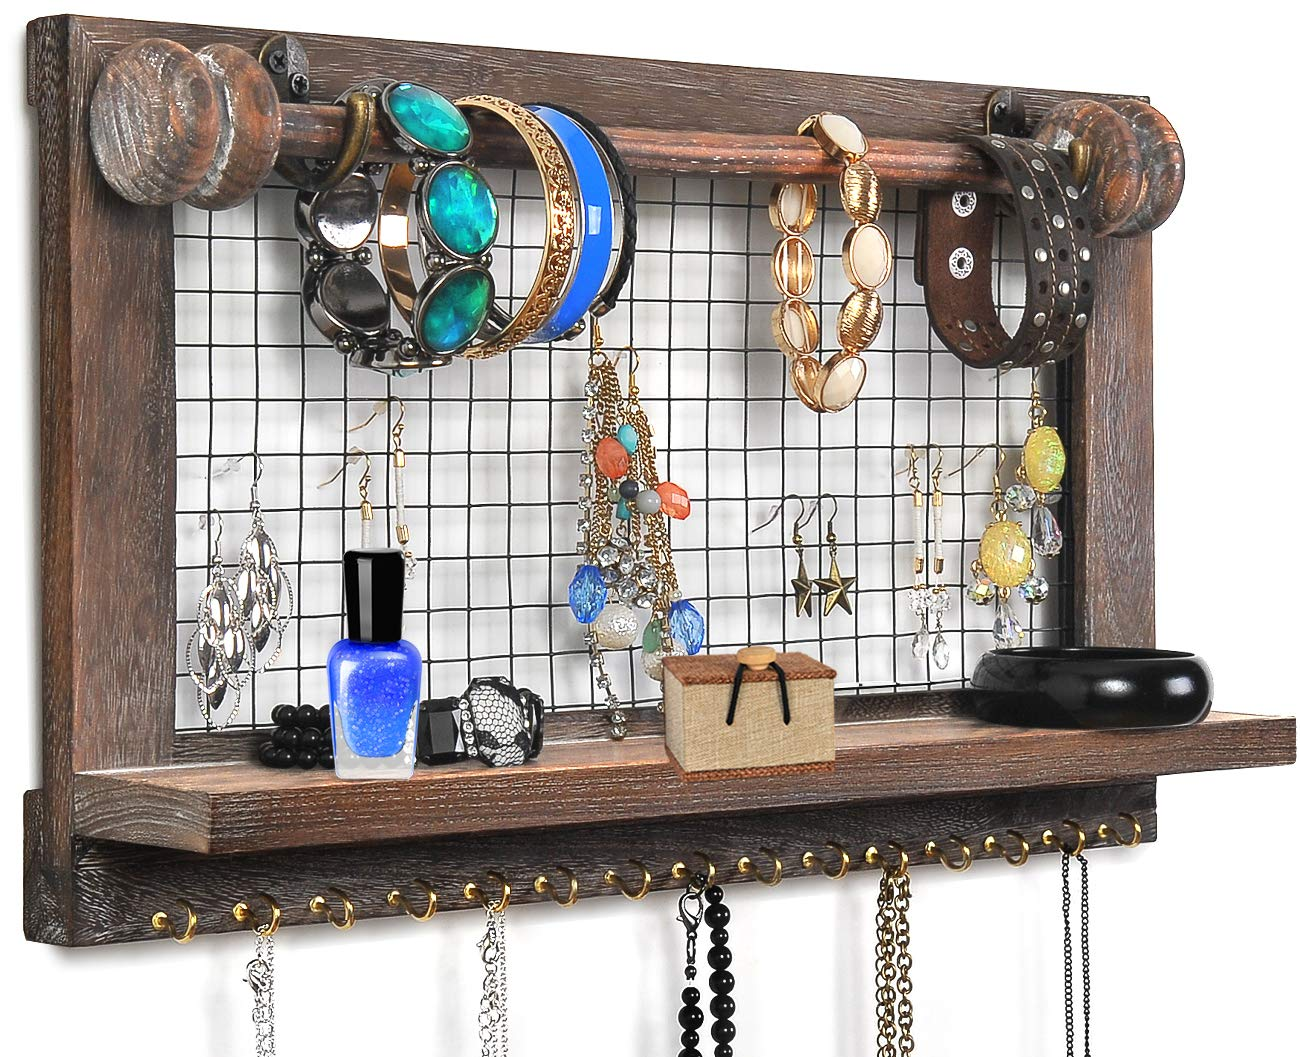 VIEFIN Rustic Wall Mounted Mesh Jewelry Organizer, Wood Shabby Chic Earring Holder with Shelf, Hanging Hook for Necklace, Removable Rod for Bracelet